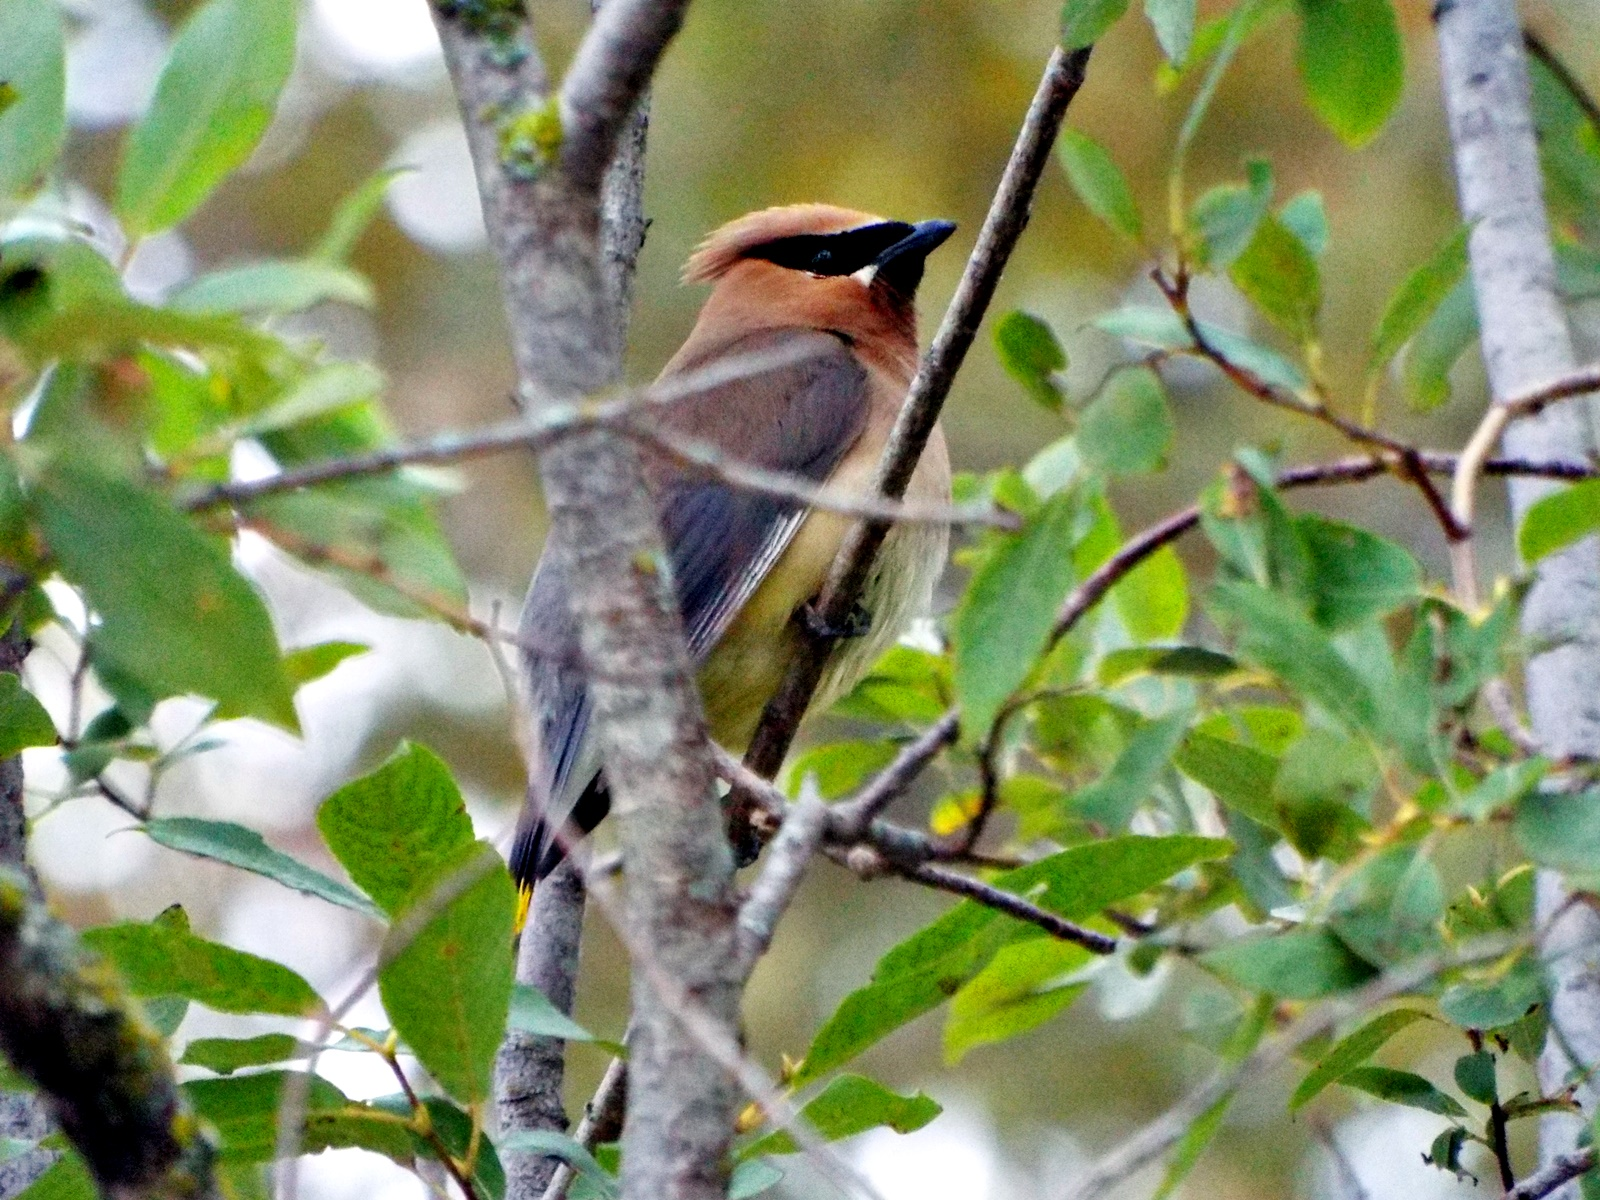 cedar-waxwing-or-bohemian-waxwing-due-to-yellow-on-tail